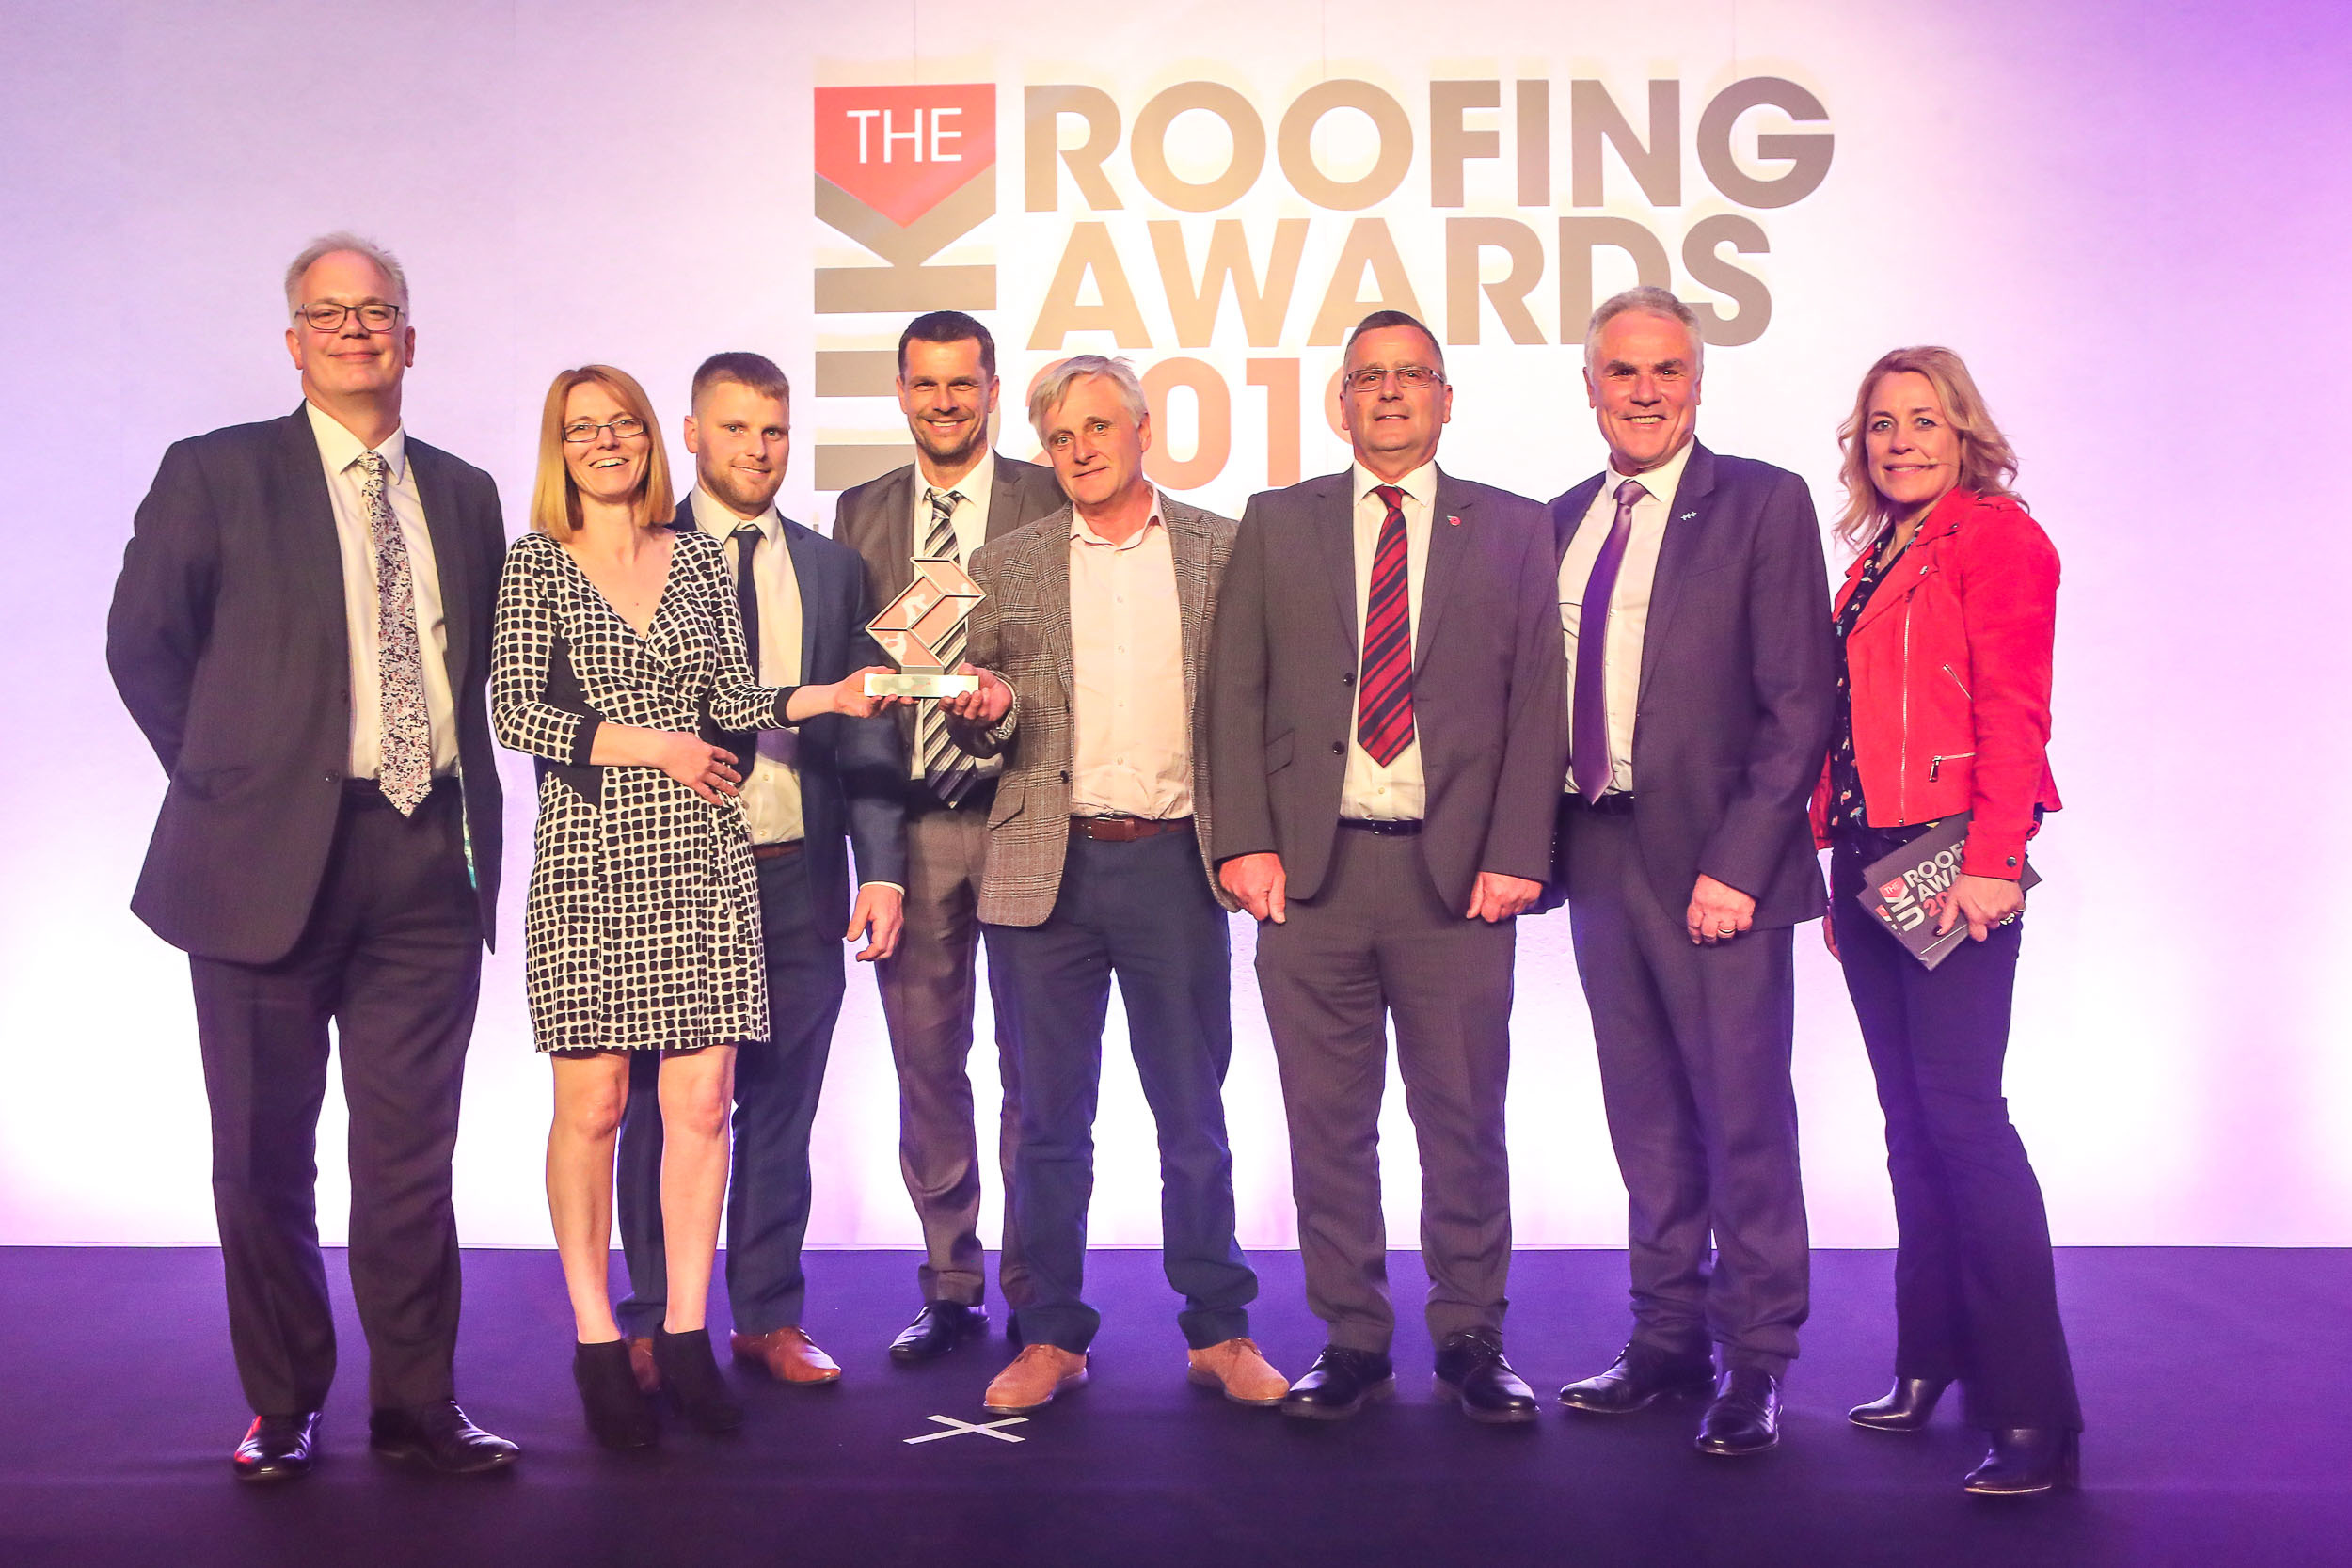 uk_roofign_awards__pic_credit_pete_davies_photography_2500_04